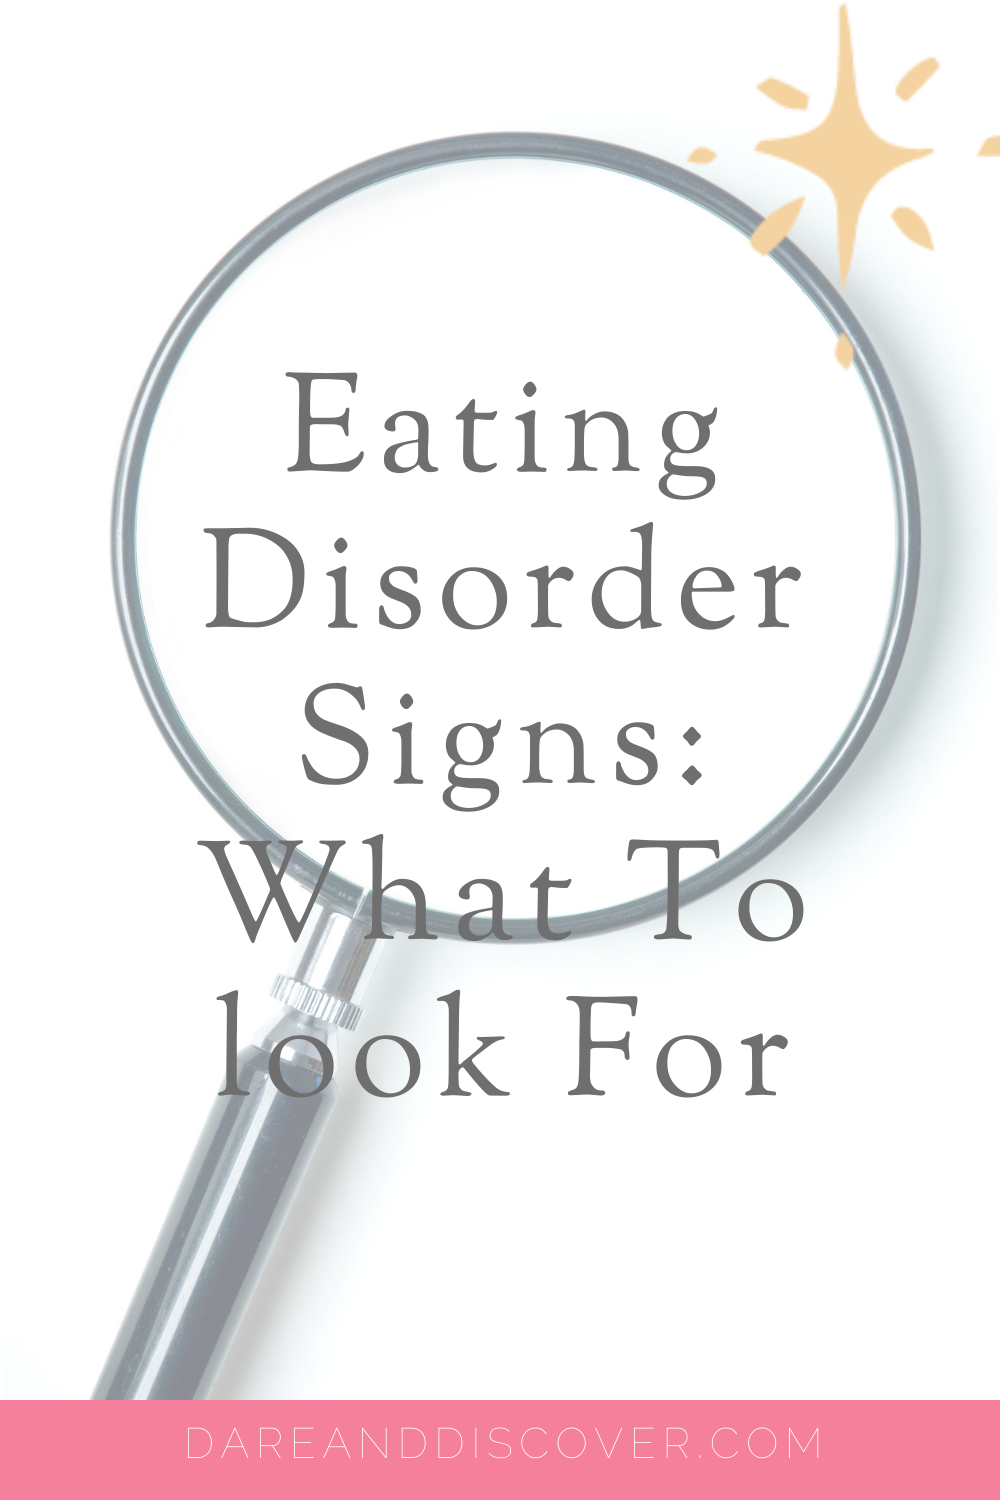 If you're worried about yourself, or someone you know, with regards to eating disorders then here are the commons signs for Anorexia Nervosa, Bulimia Nervosa, and Binge Eating Disorder. The signs and symptoms of eating disorders might not always be obvious, and it's always better to seek the guidance and advice from a medical and/or mental health professional | Anorexia Signs | Bulimia Signs | Binge Eating Disorder Signs | #EatingDisorders #EatingDisorderSignsAndSymptoms